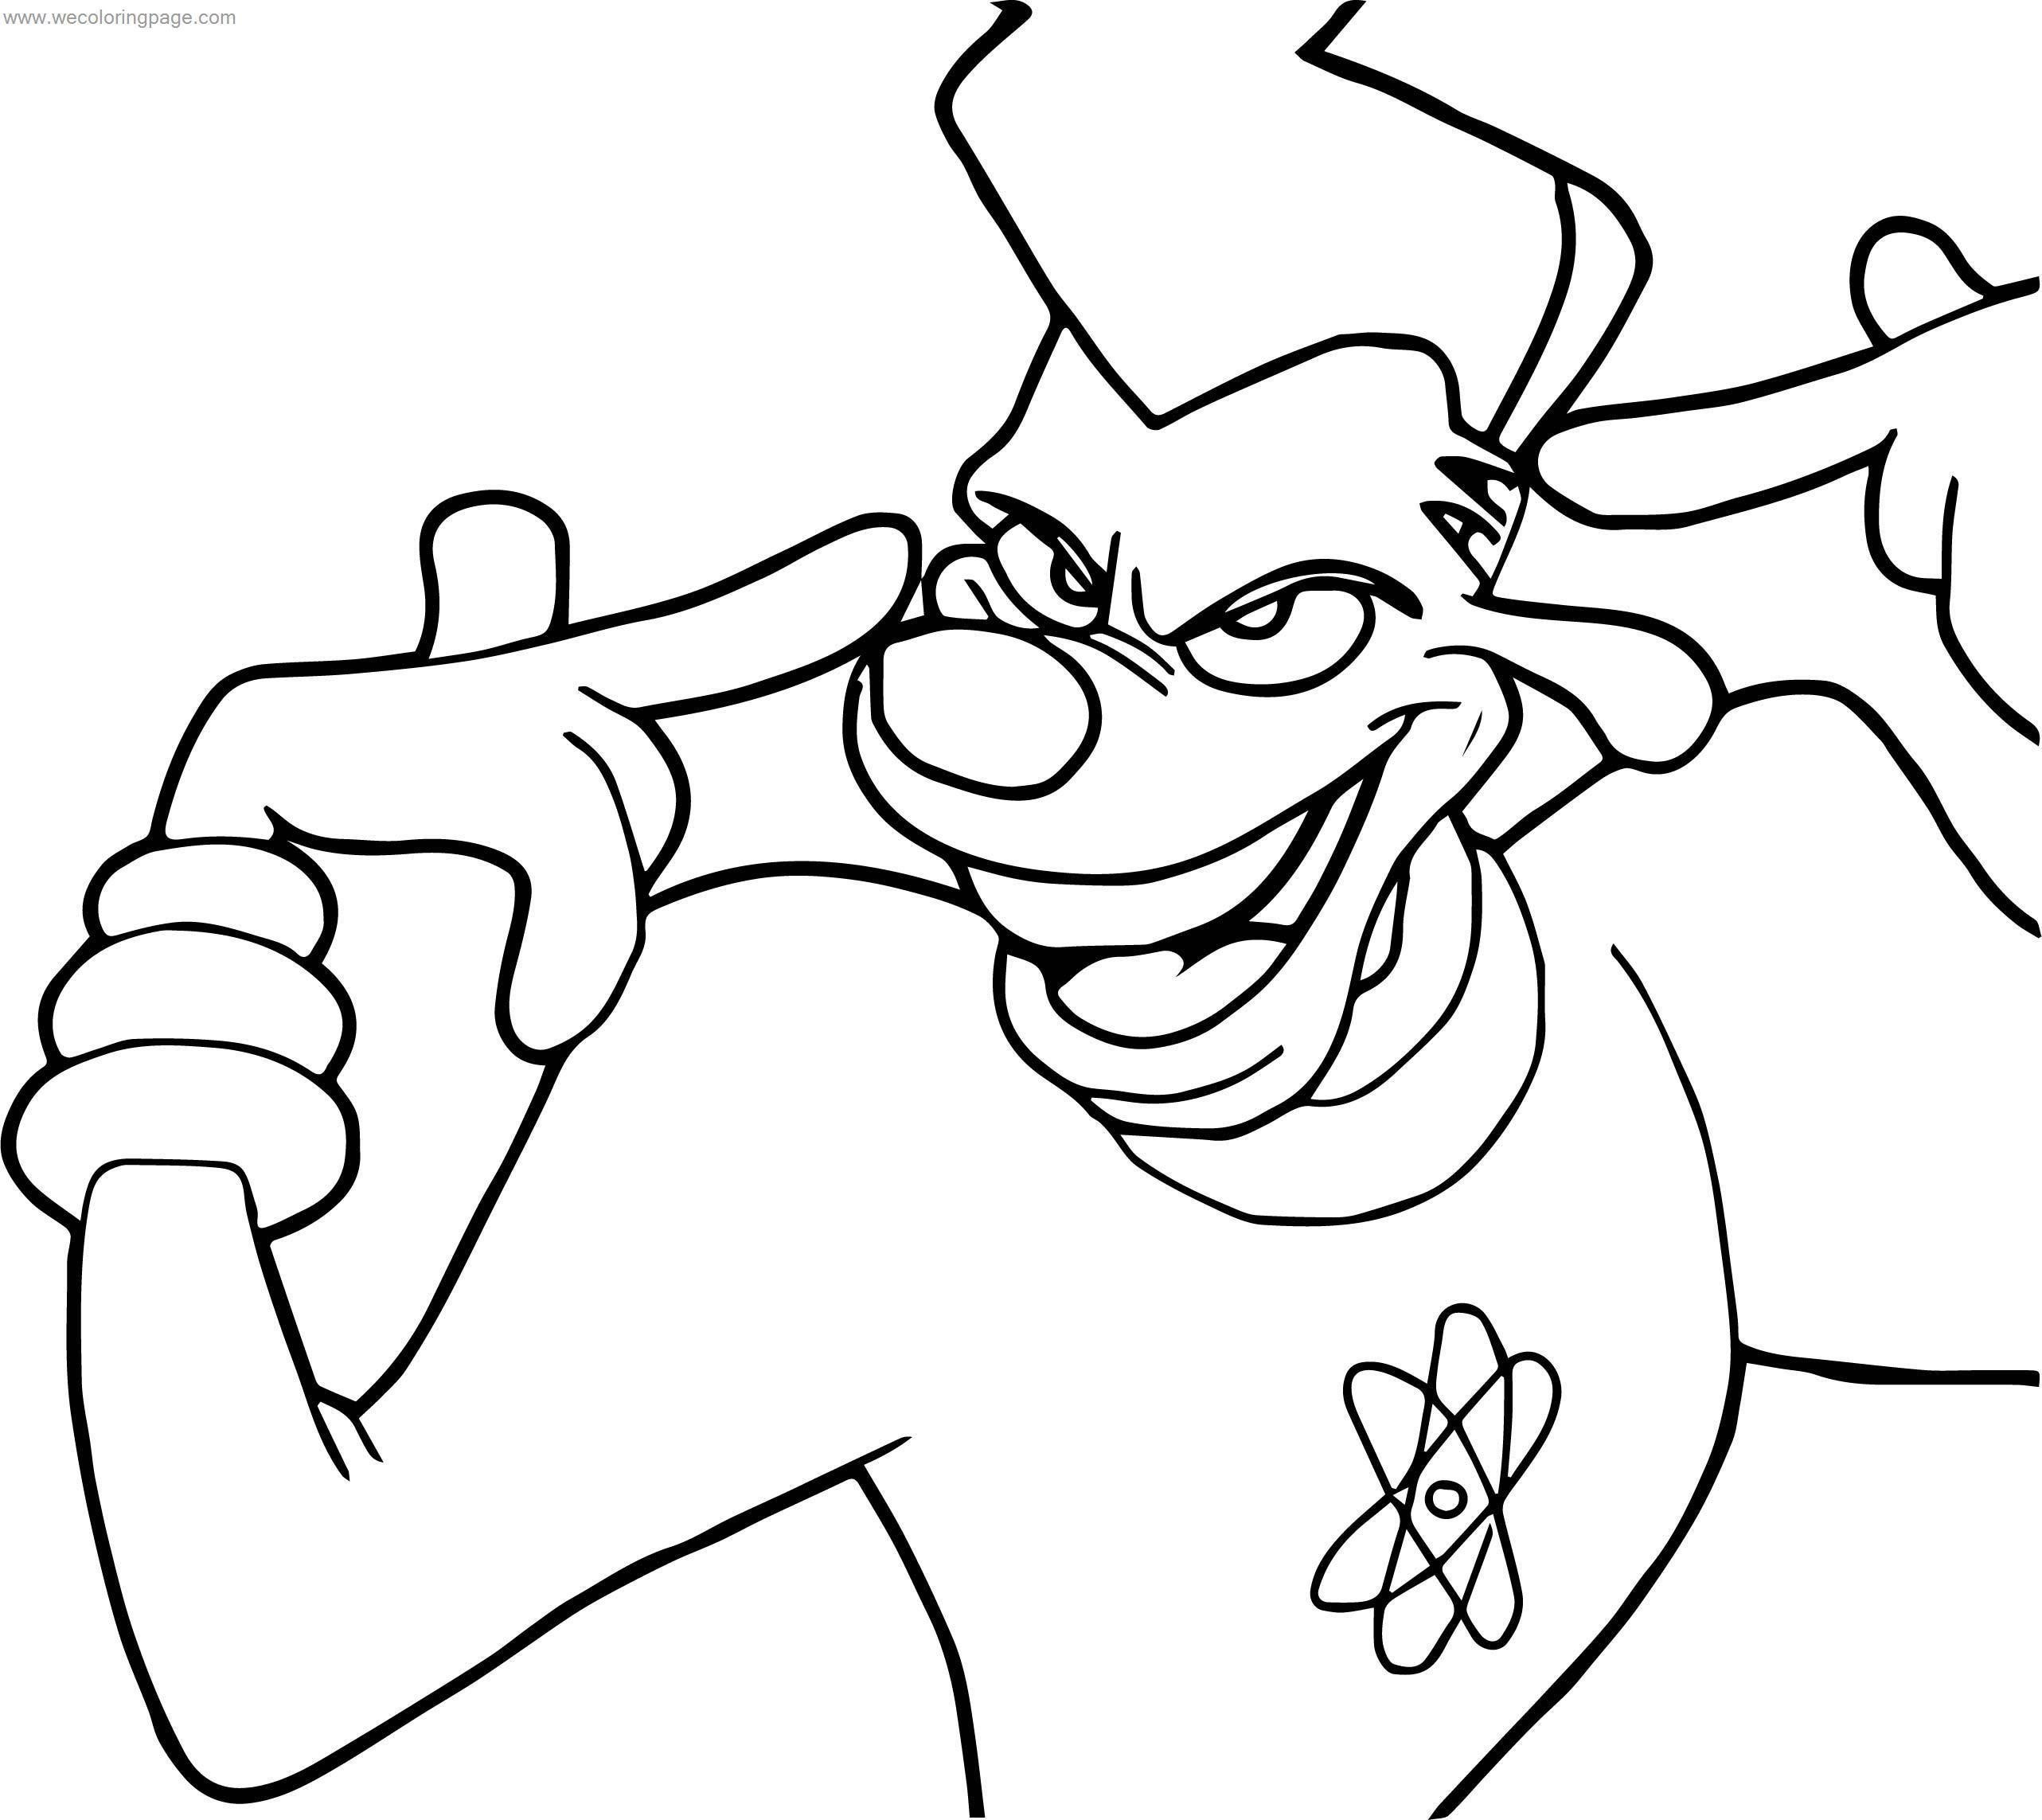 Powerline A Goofy Movie Think Coloring Page